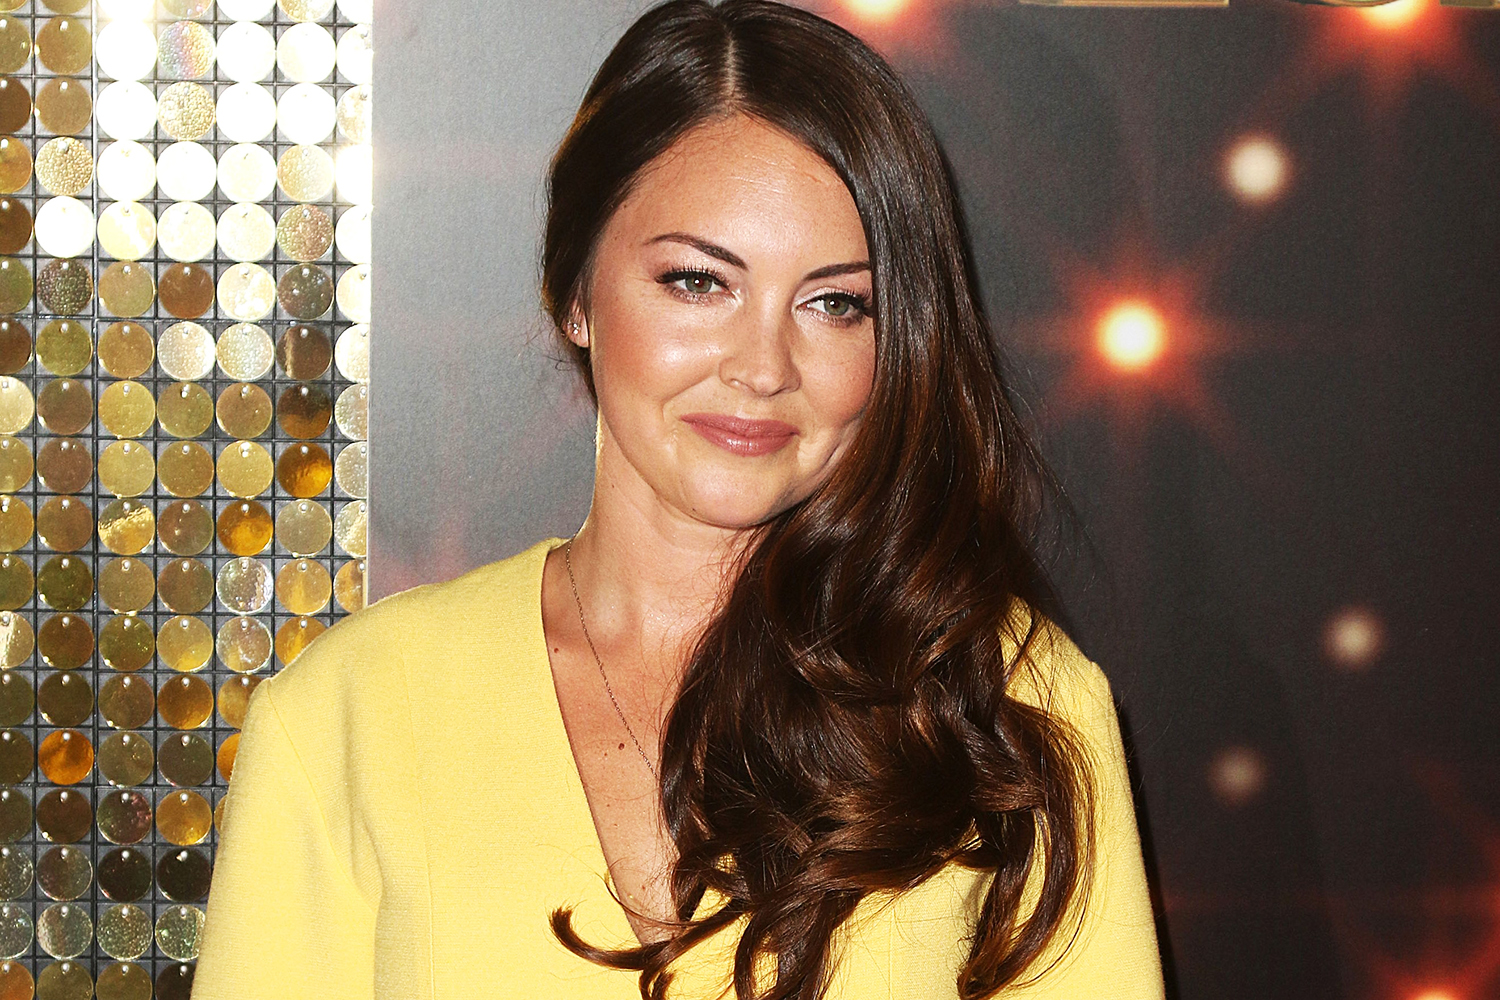 EastEnders star Lacey Turner pays tribute to her daughter on her first birthday